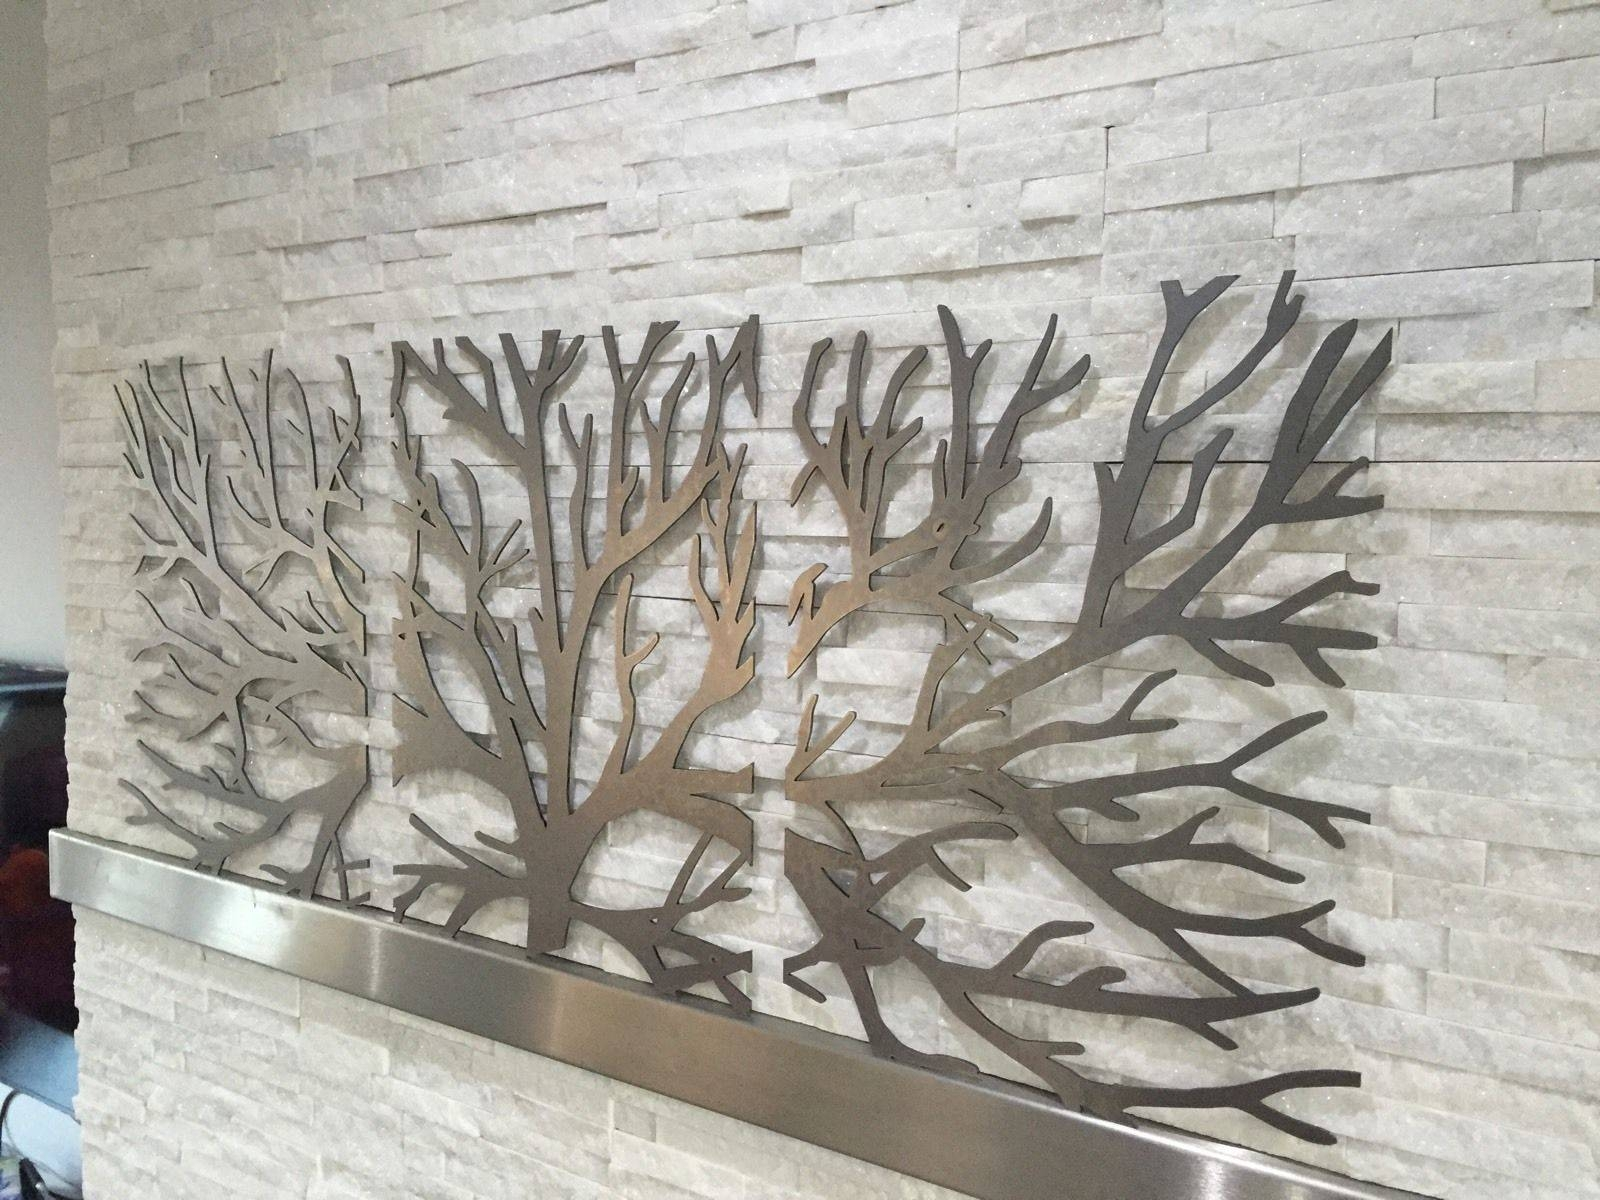 Wall Art 3D Metal Decor | Wallartideas In Most Up To Date 3D Metal Wall Art (View 14 of 20)